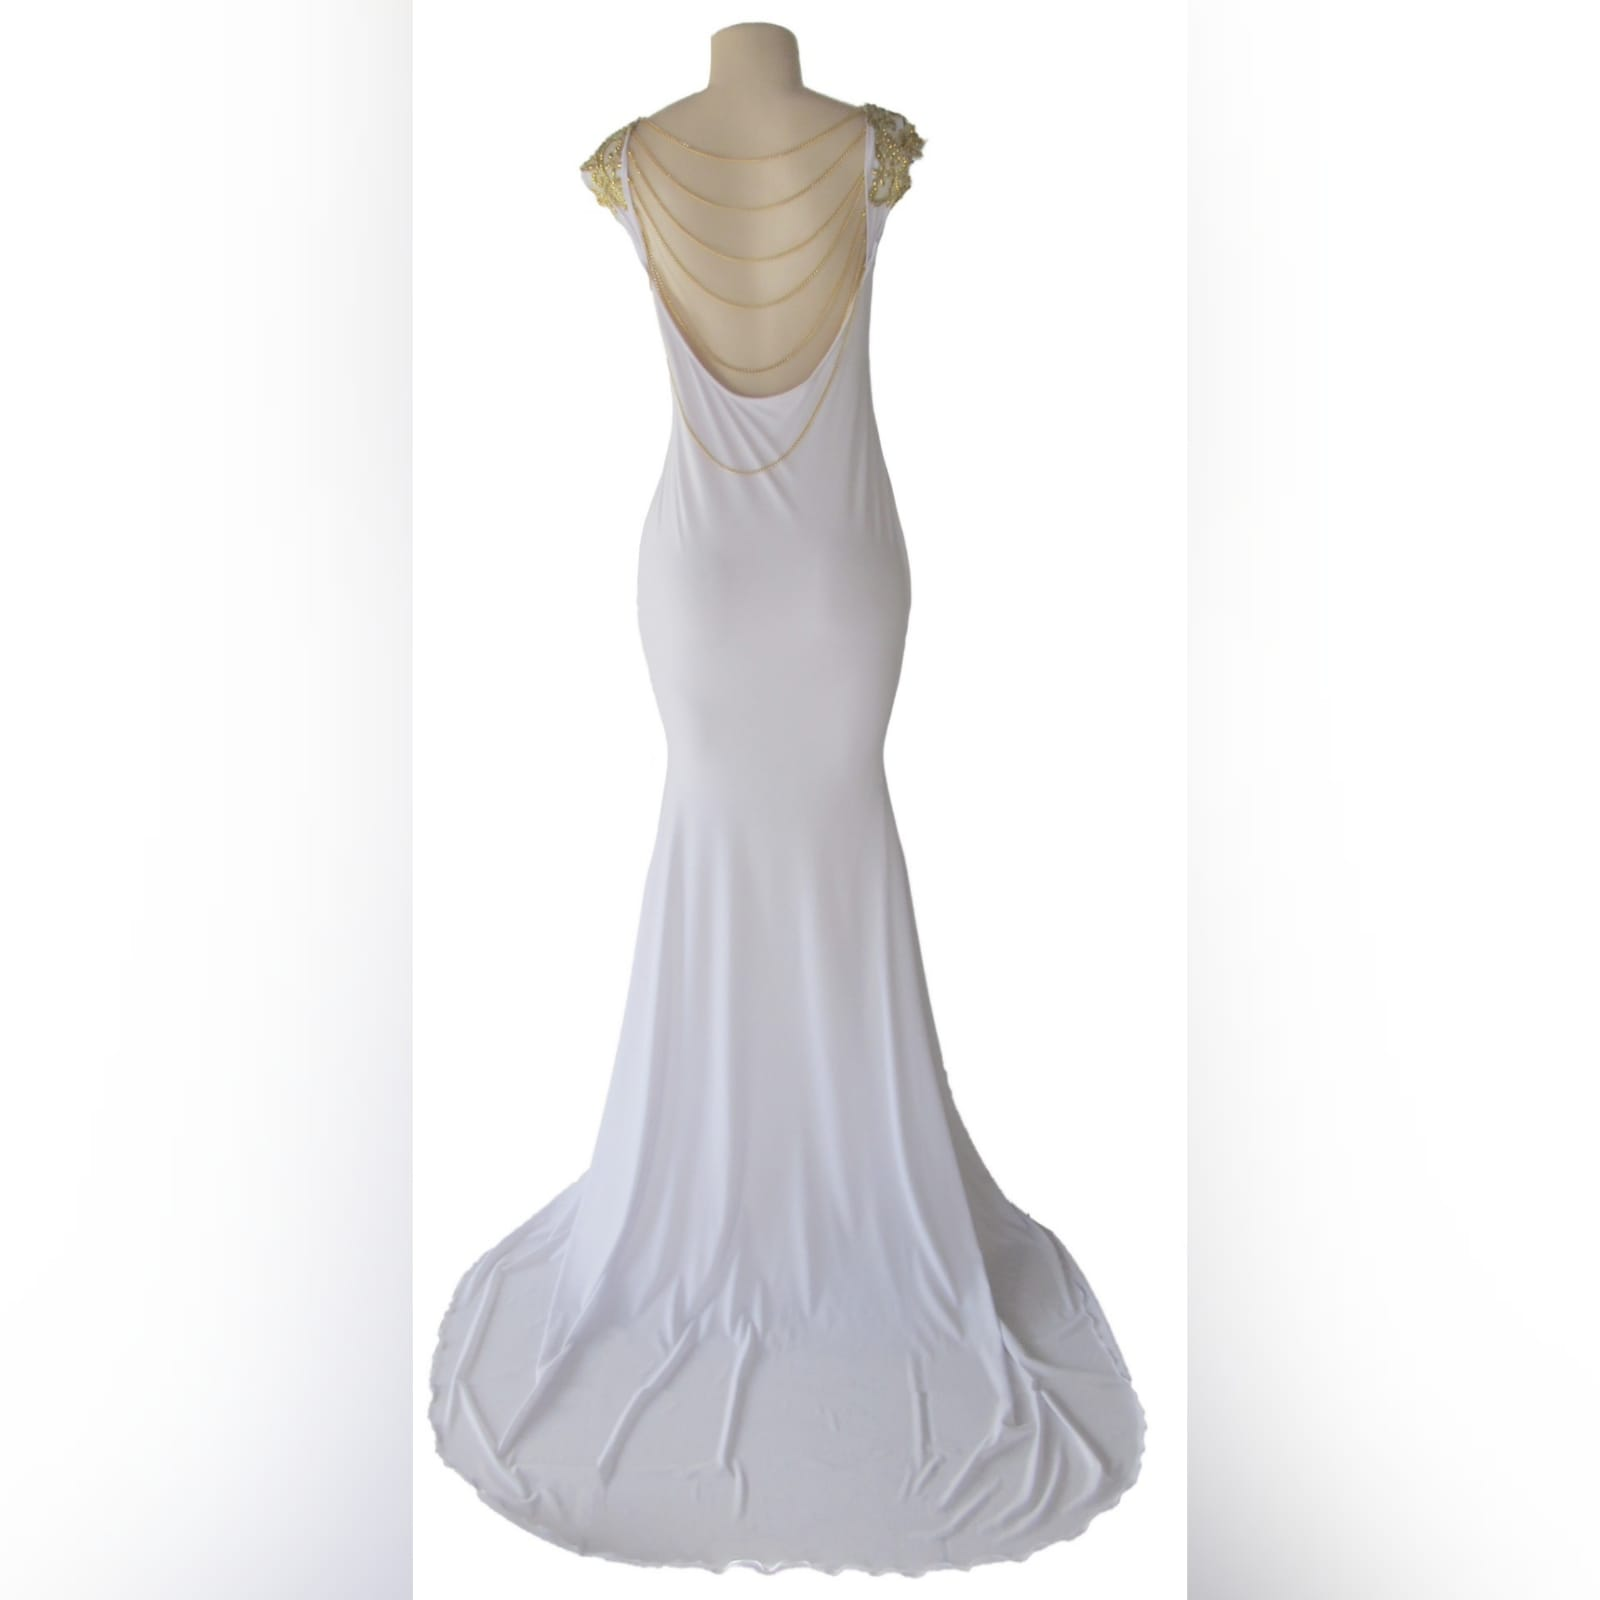 White long jewel neckline matric farewell dress with a rounded open back 3 white long jewel neckline matric farewell dress with a rounded open back, detailed with gold chains, shoulders detailed with gold lace.